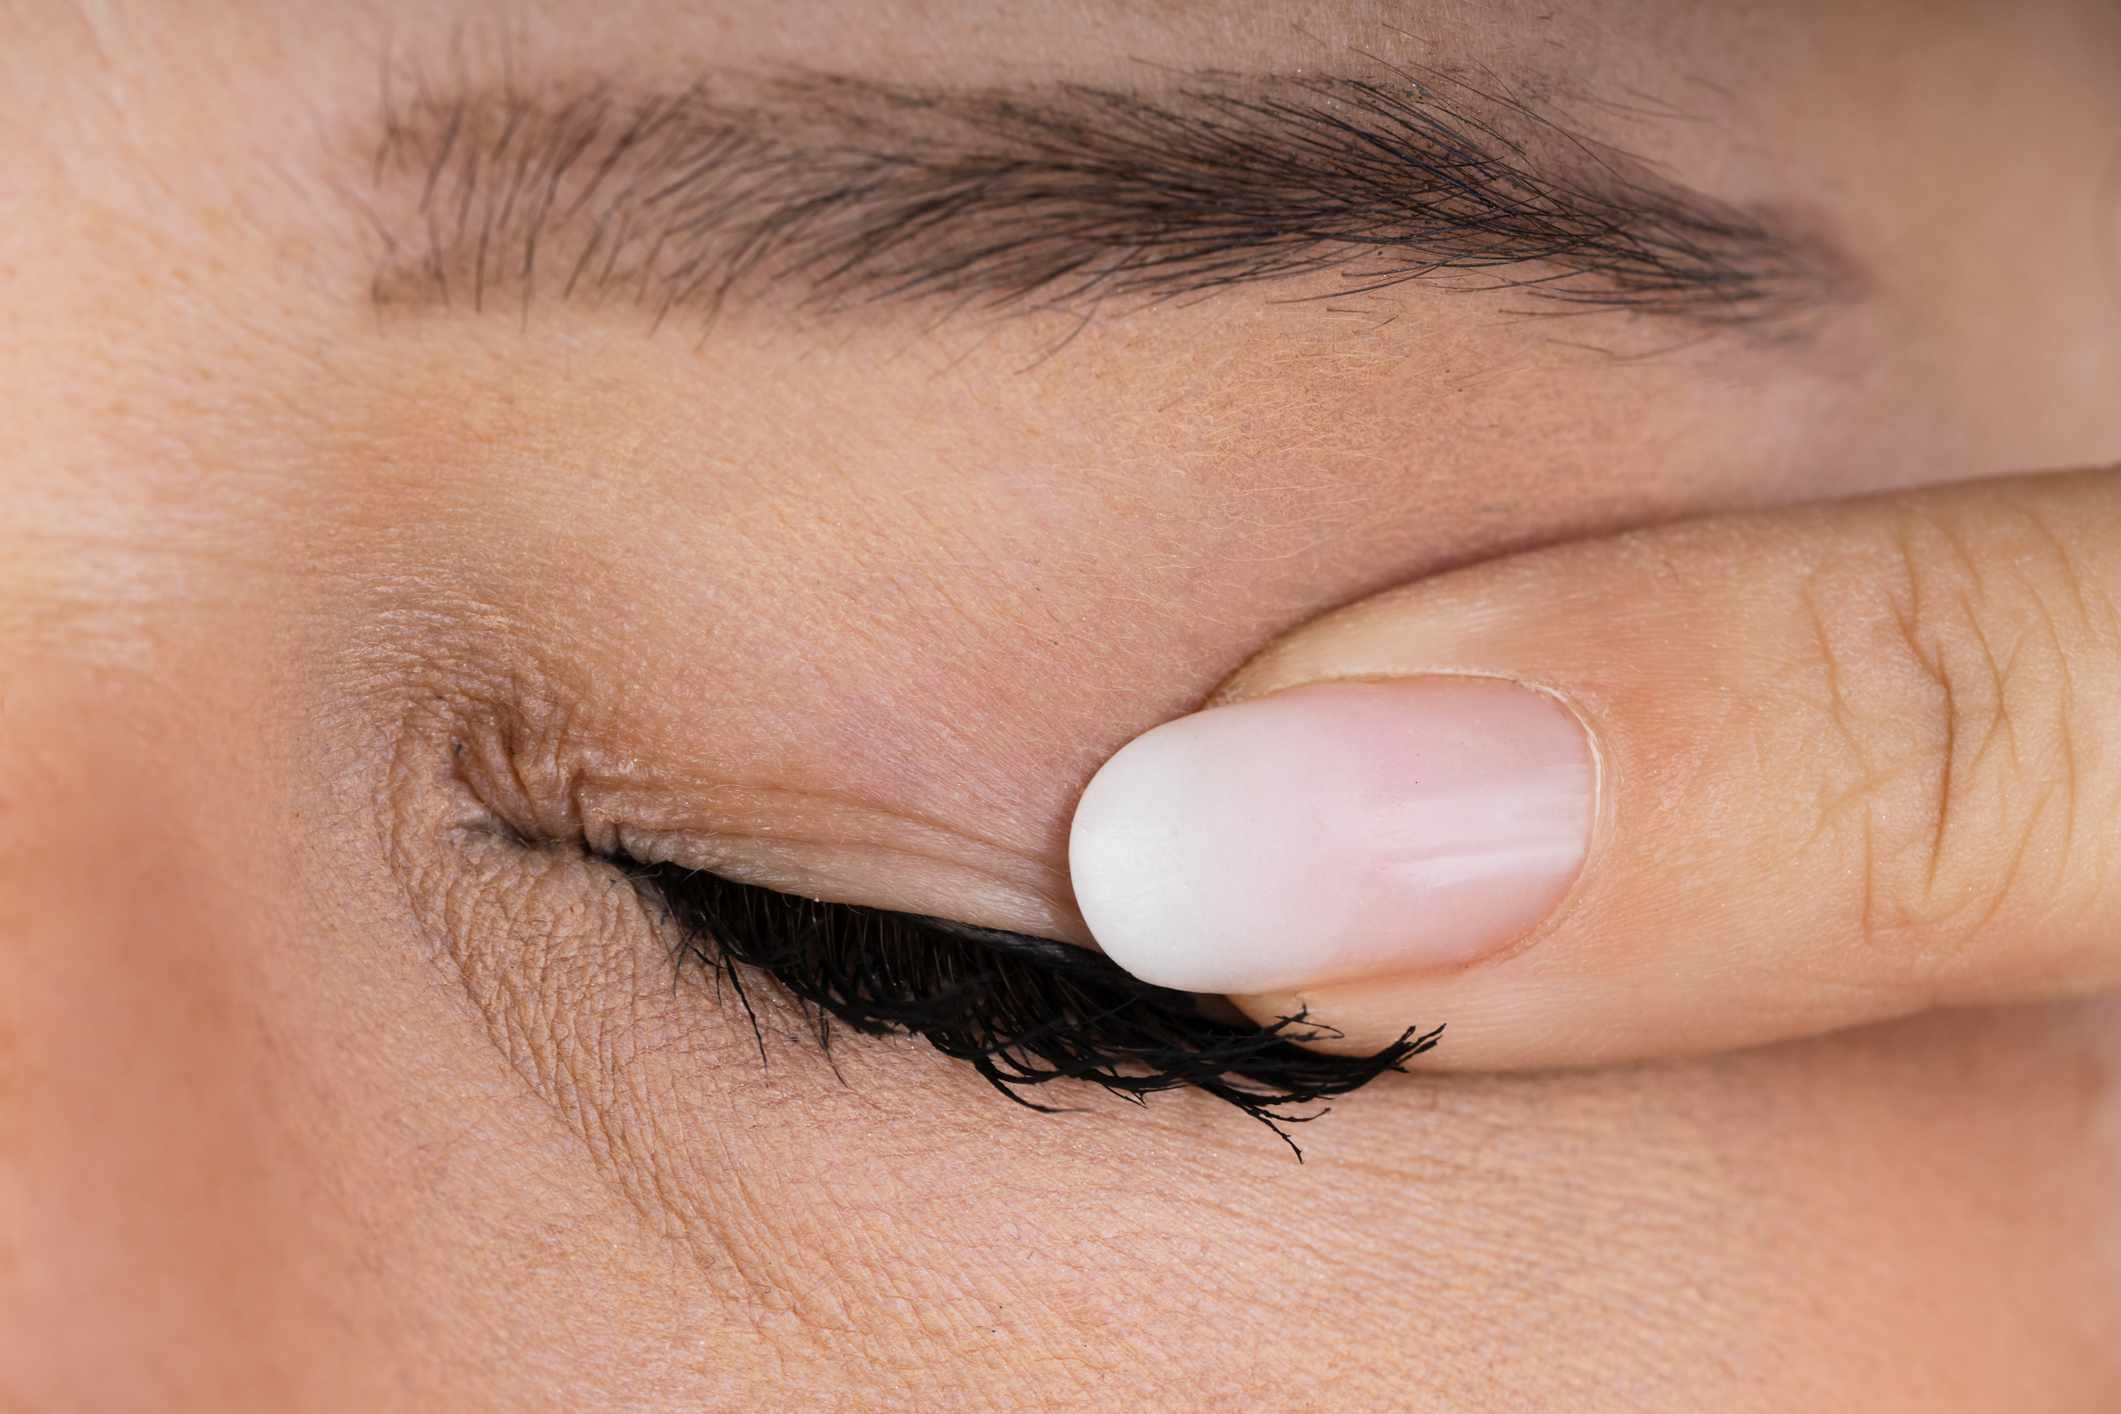 Finger pressing on a closed eyelid near the lashes